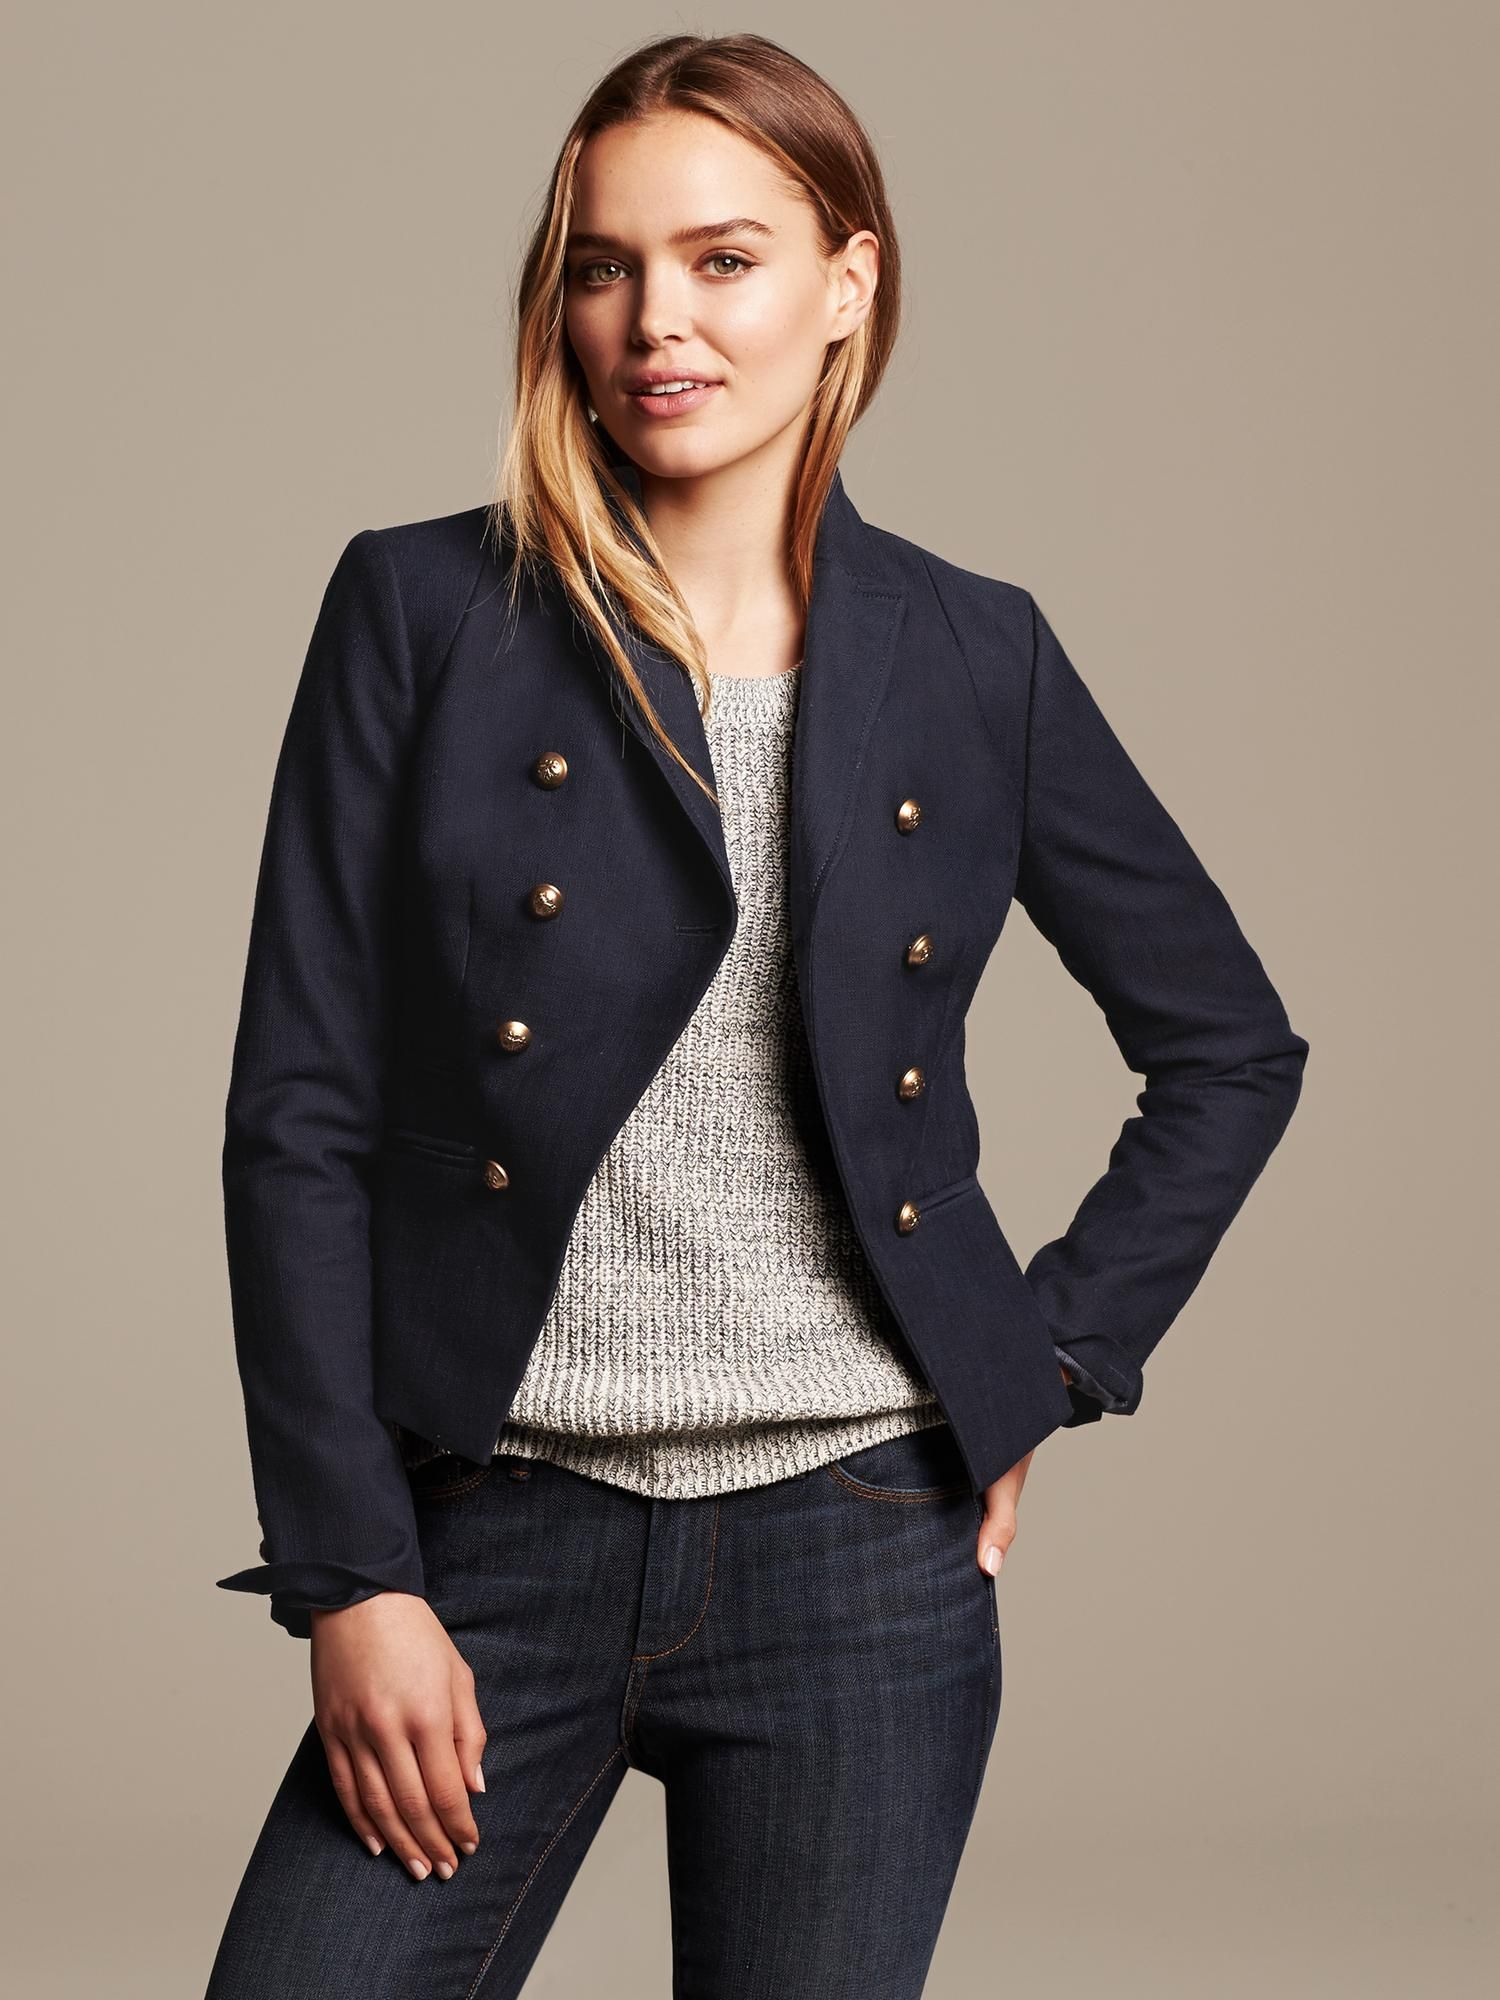 369c5cb1649f6 banana republic navy blue cutaway blazer | Clothing & Style ...